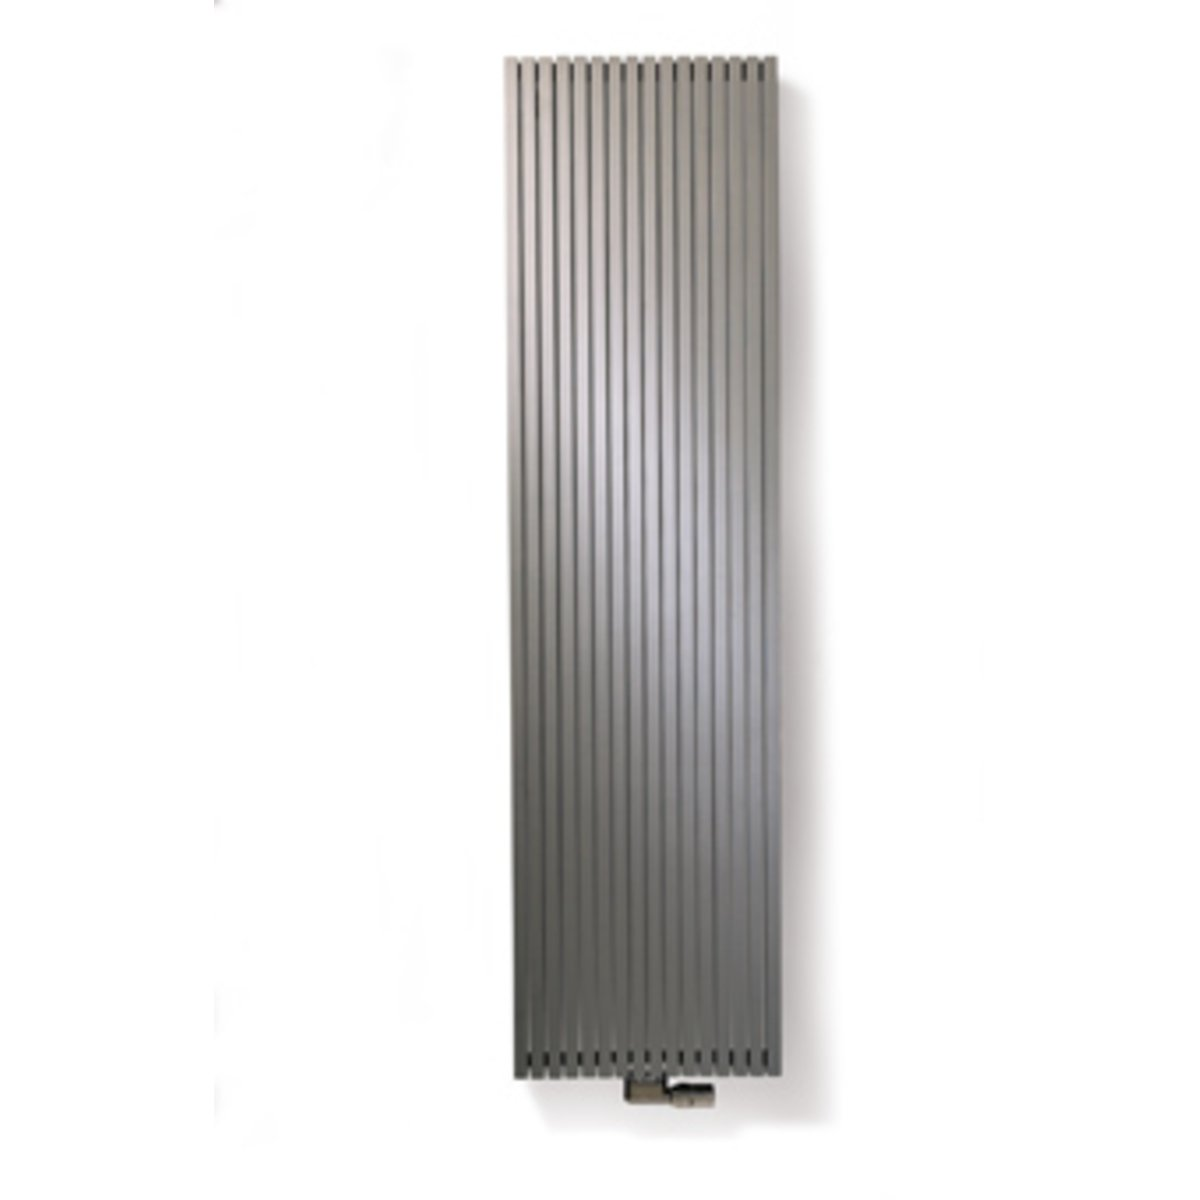 vasco carre plus designradiator 1800x595mm 2047w aansluiting 1188 wit 7244646